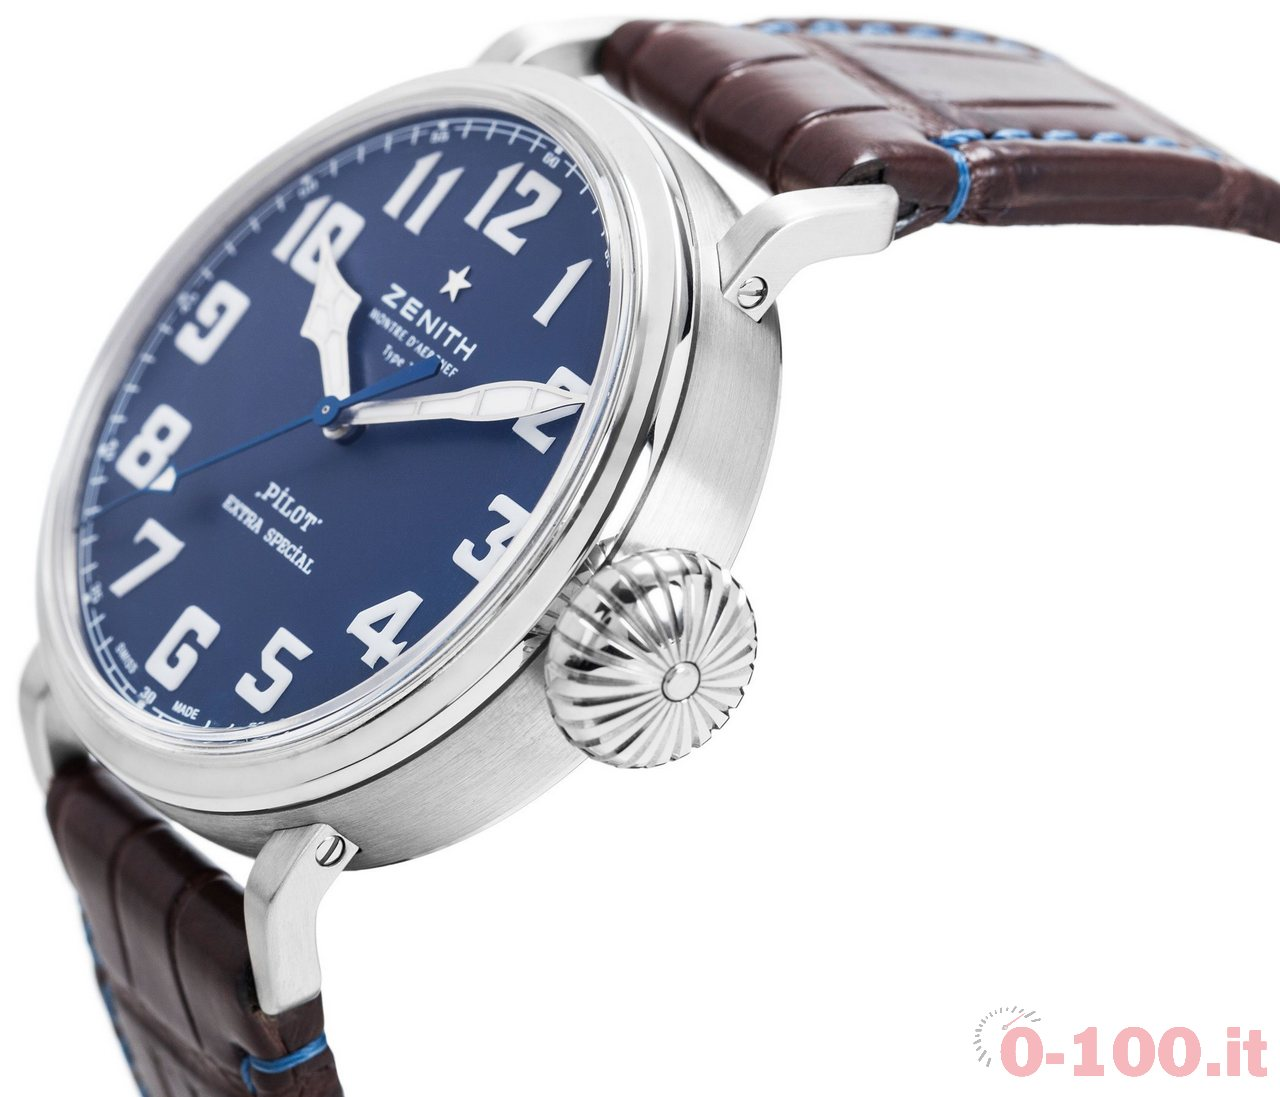 zenith-pilot-type-20-extra-special-blue-limited-edition-the-watch-gallery-prezzo-price_0-1002